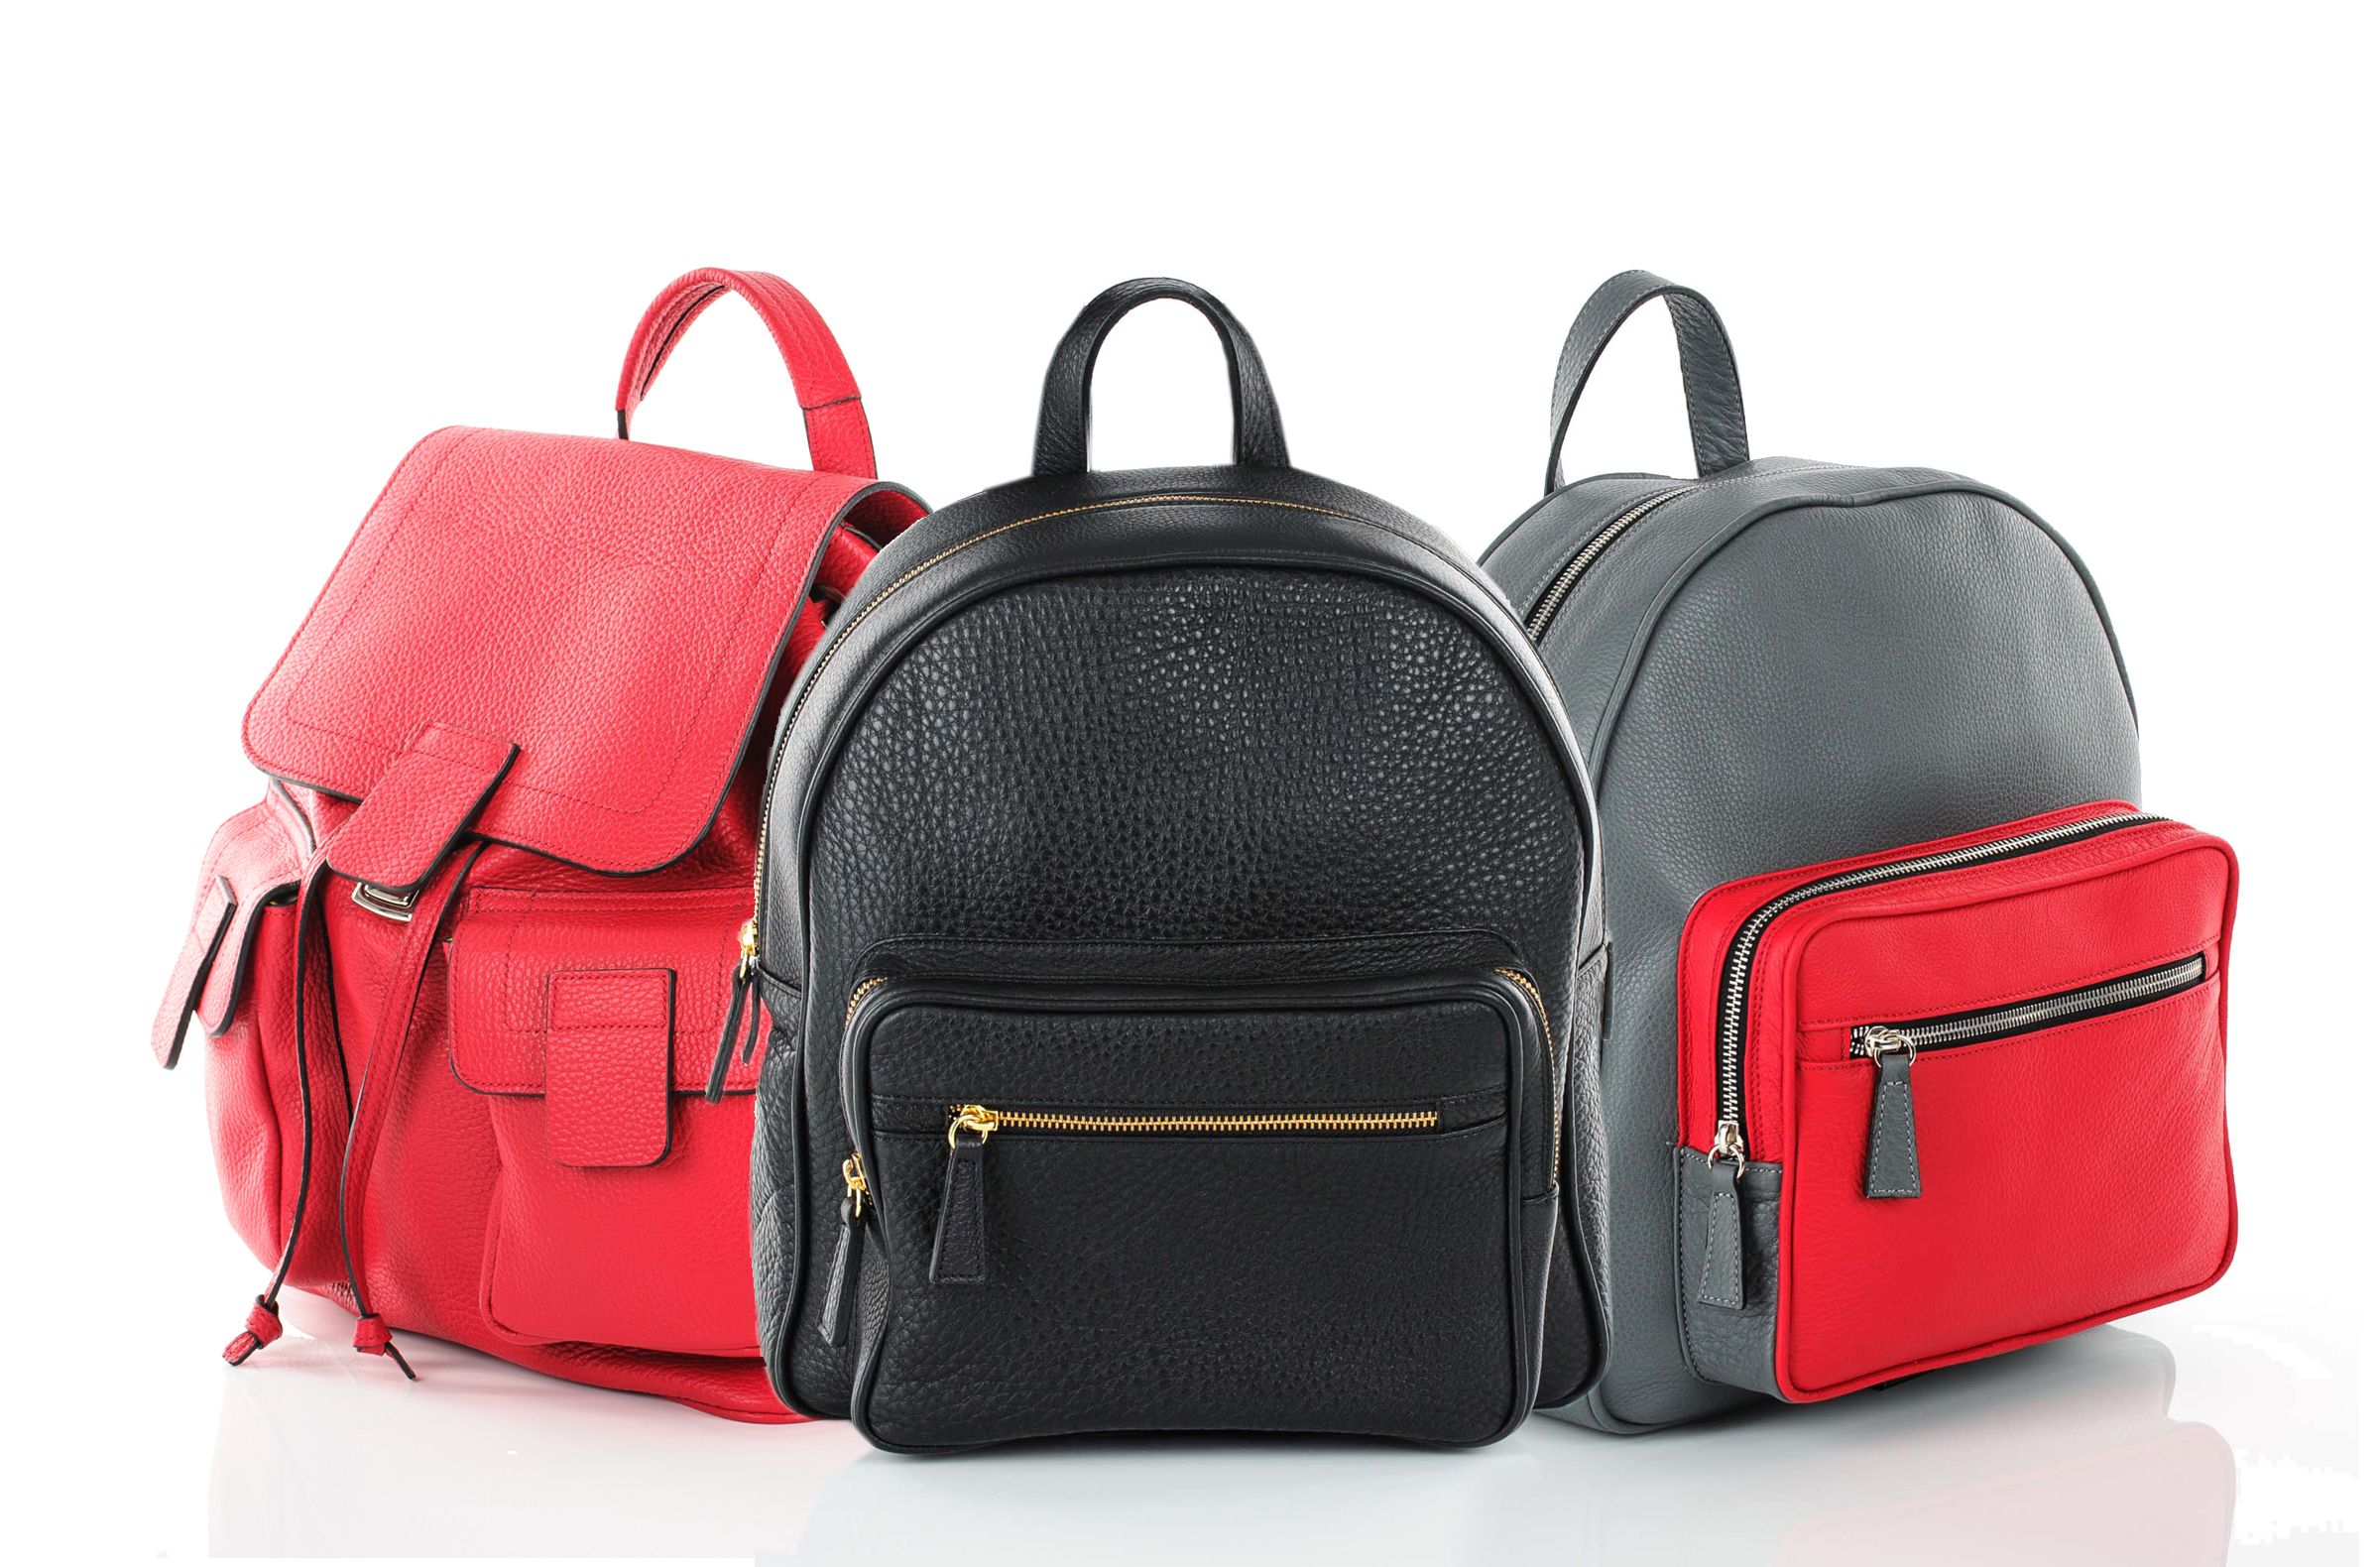 Youthful and relaxed, the backback is yet again part of this year's trends. Anka and Melisa backpacks by Millisimo.